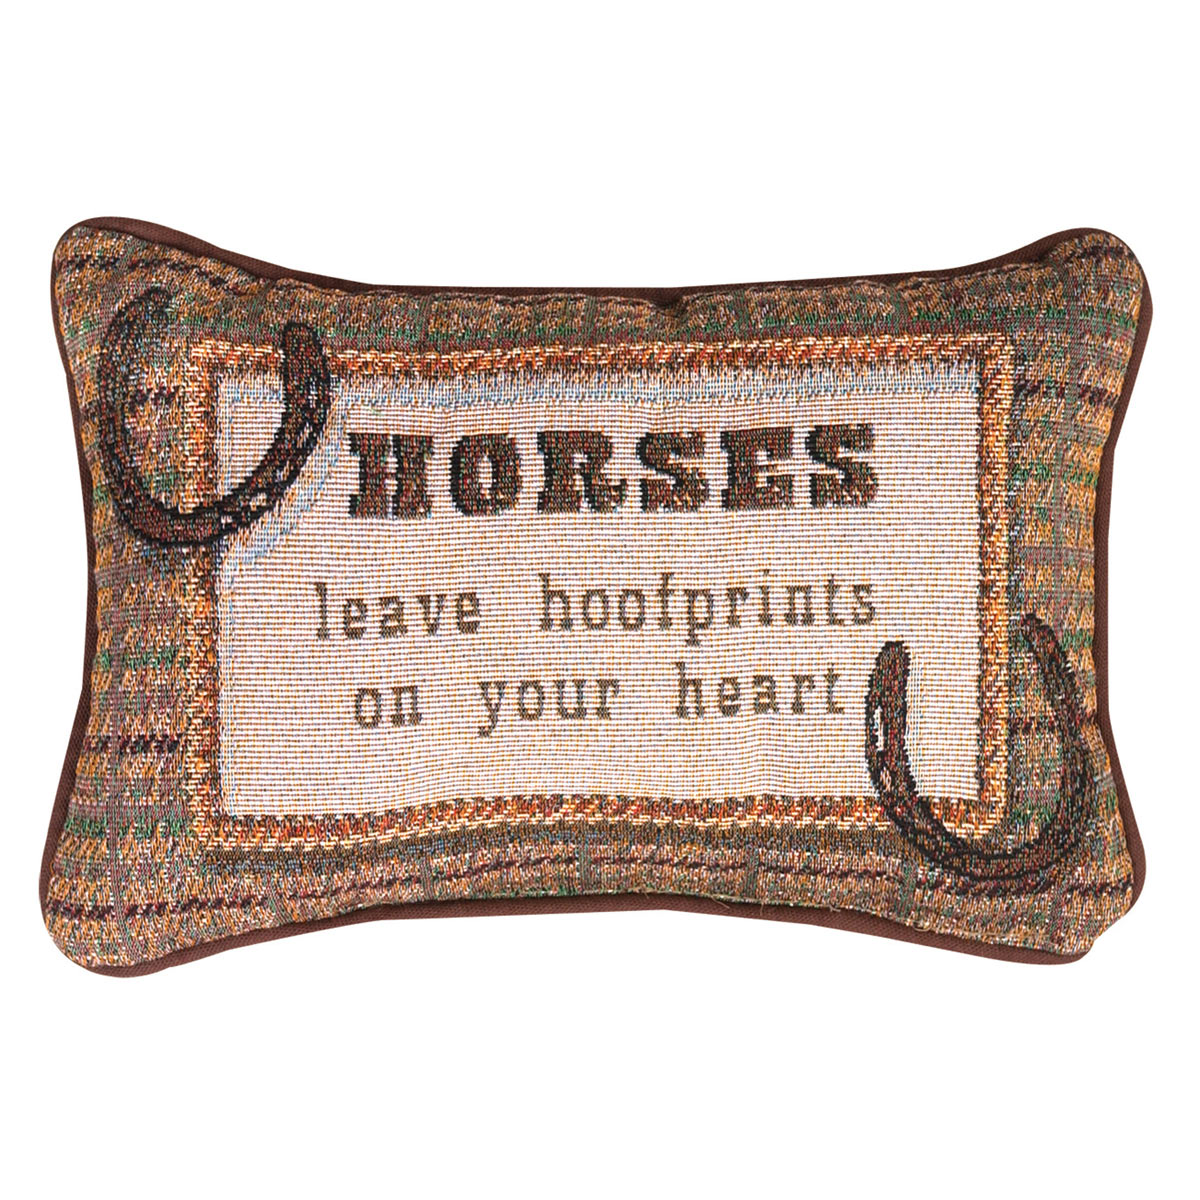 Hearts & Horseshoes Tapestry Pillow